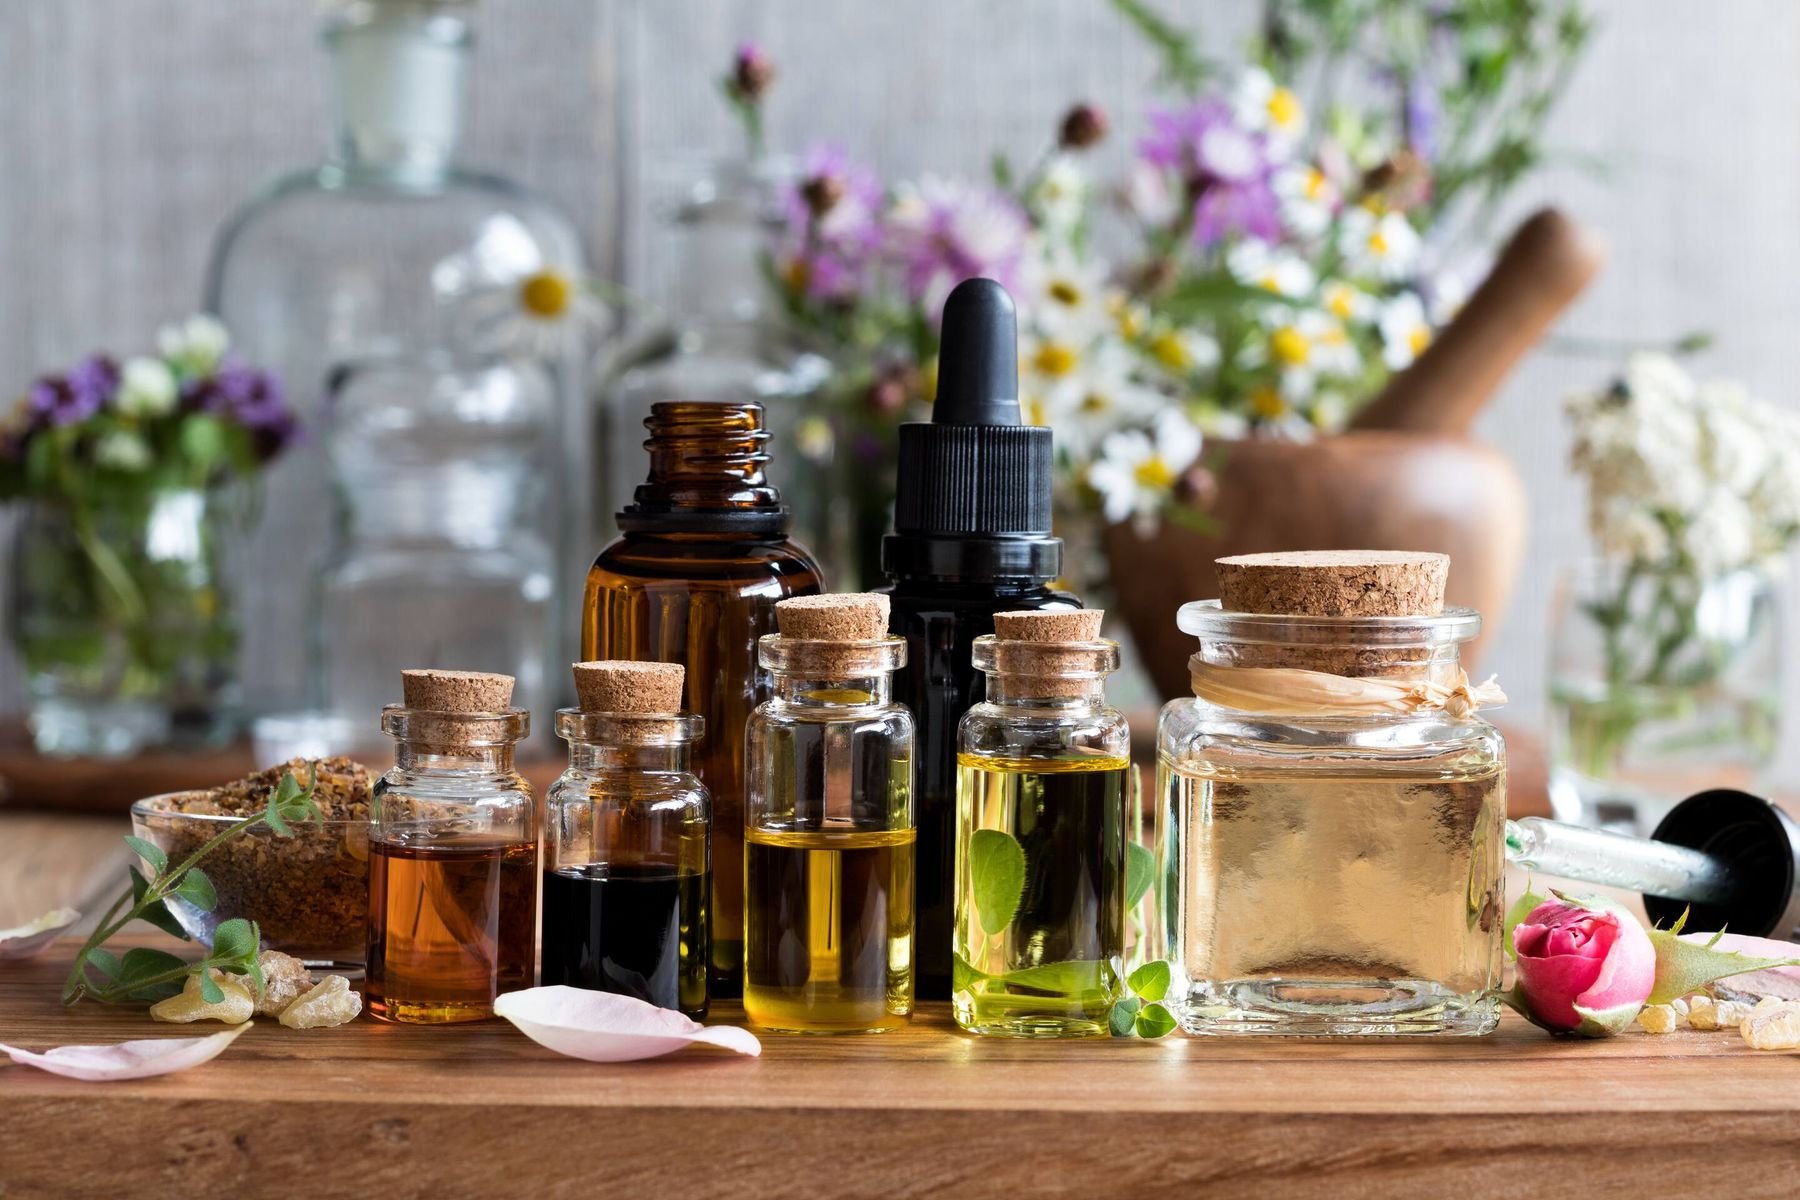 How to use essential oils around the home